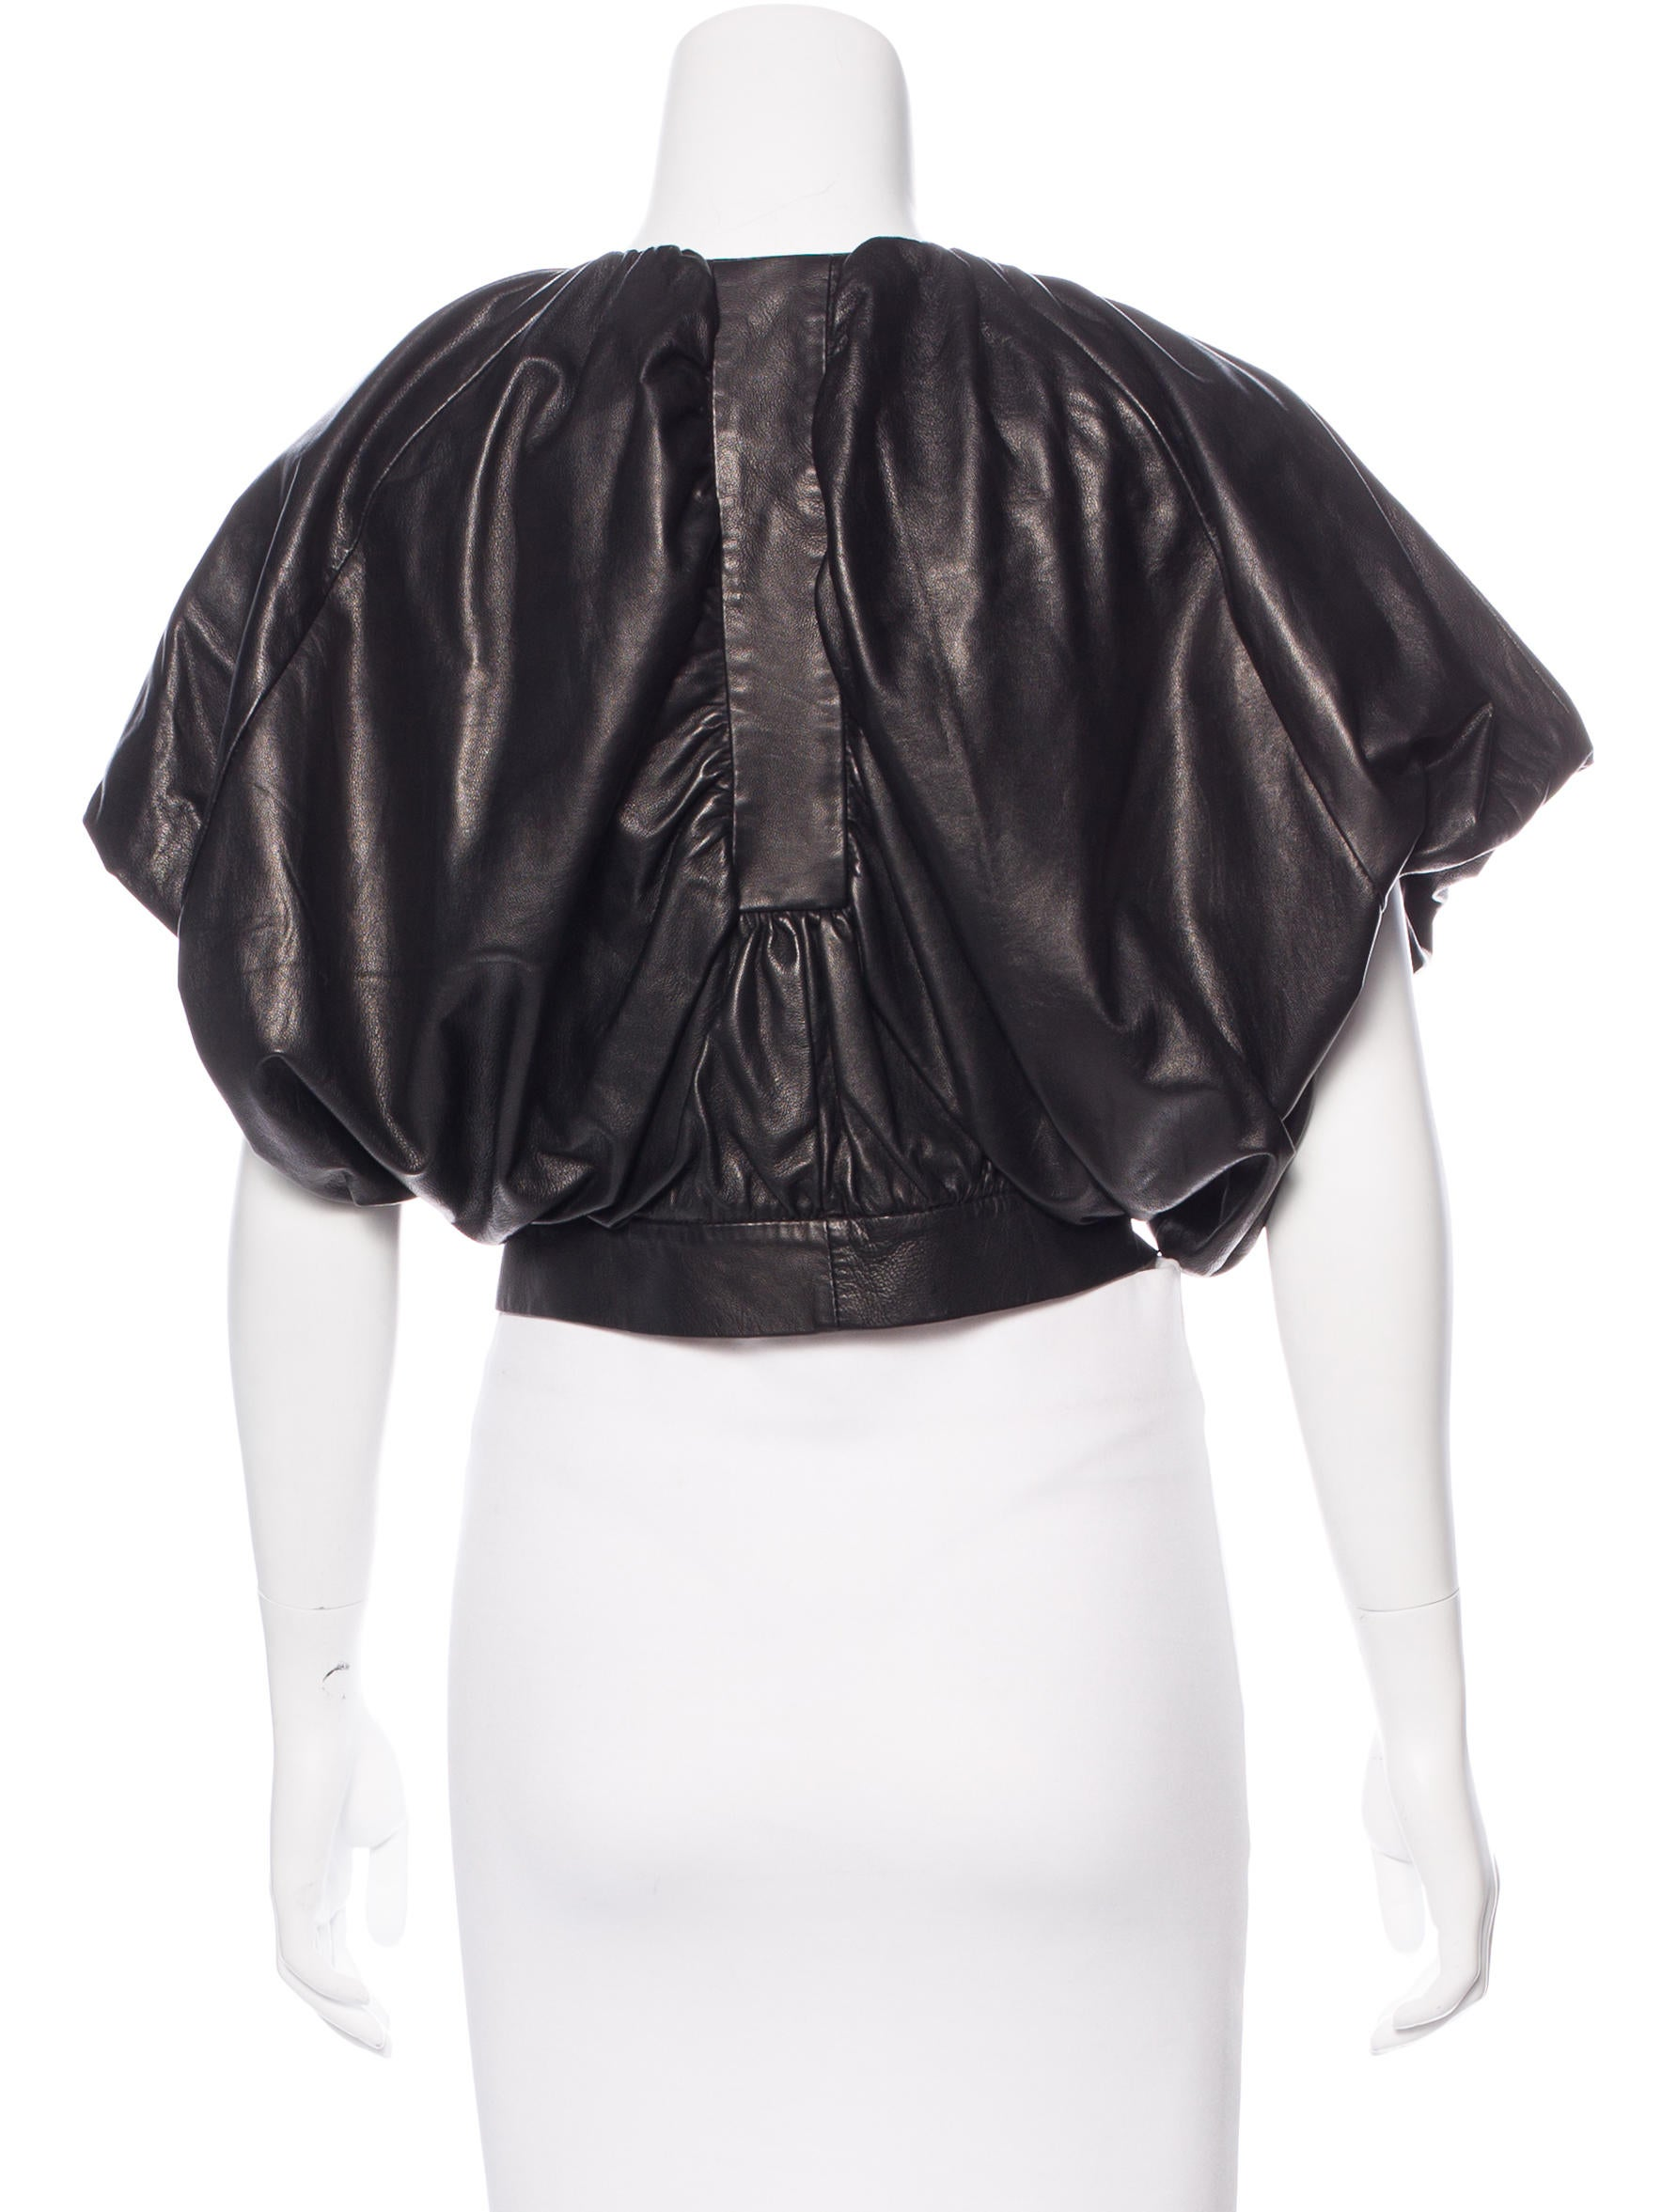 Jamison short sleeve leather jacket. This jacket is fully lined, has two exterior zippered pockets and has an elasticized waist band, sleeve cap and collar. Jacket has a zippered closure.